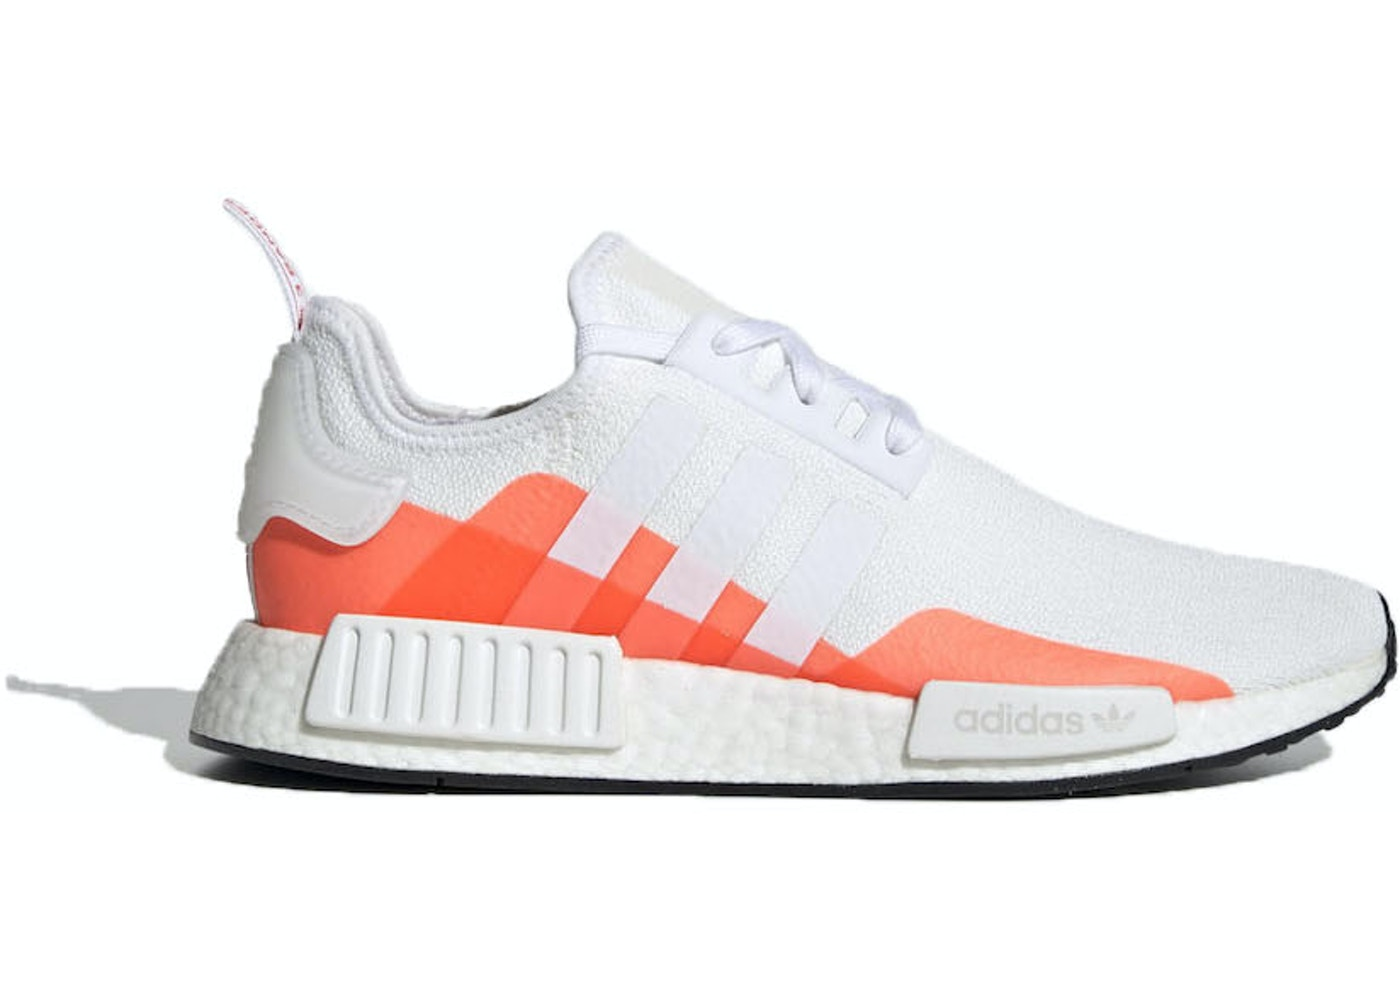 Adidas Nmd R1 Cloud White Solar Red Ee5083